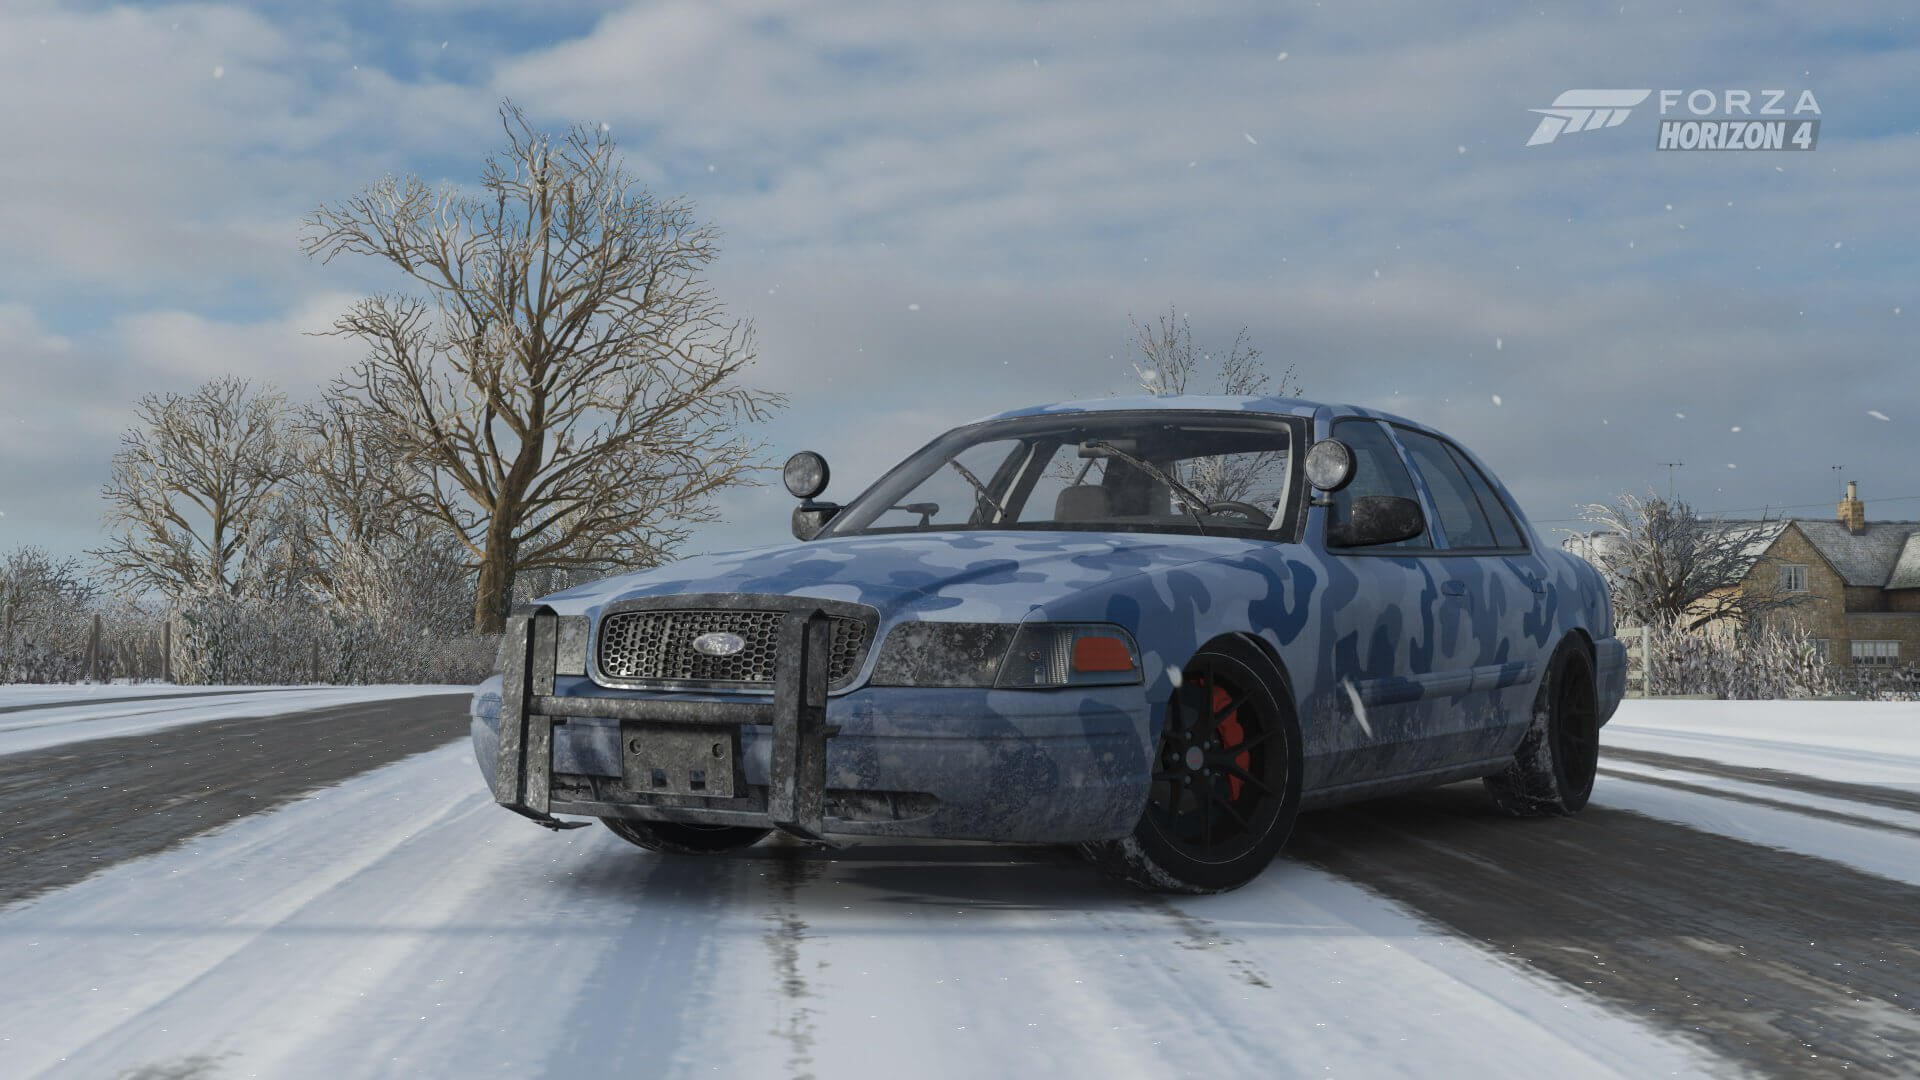 7408199d53d This Week's Forza Horizon 4 Season Change: Ford Takes Over Winter